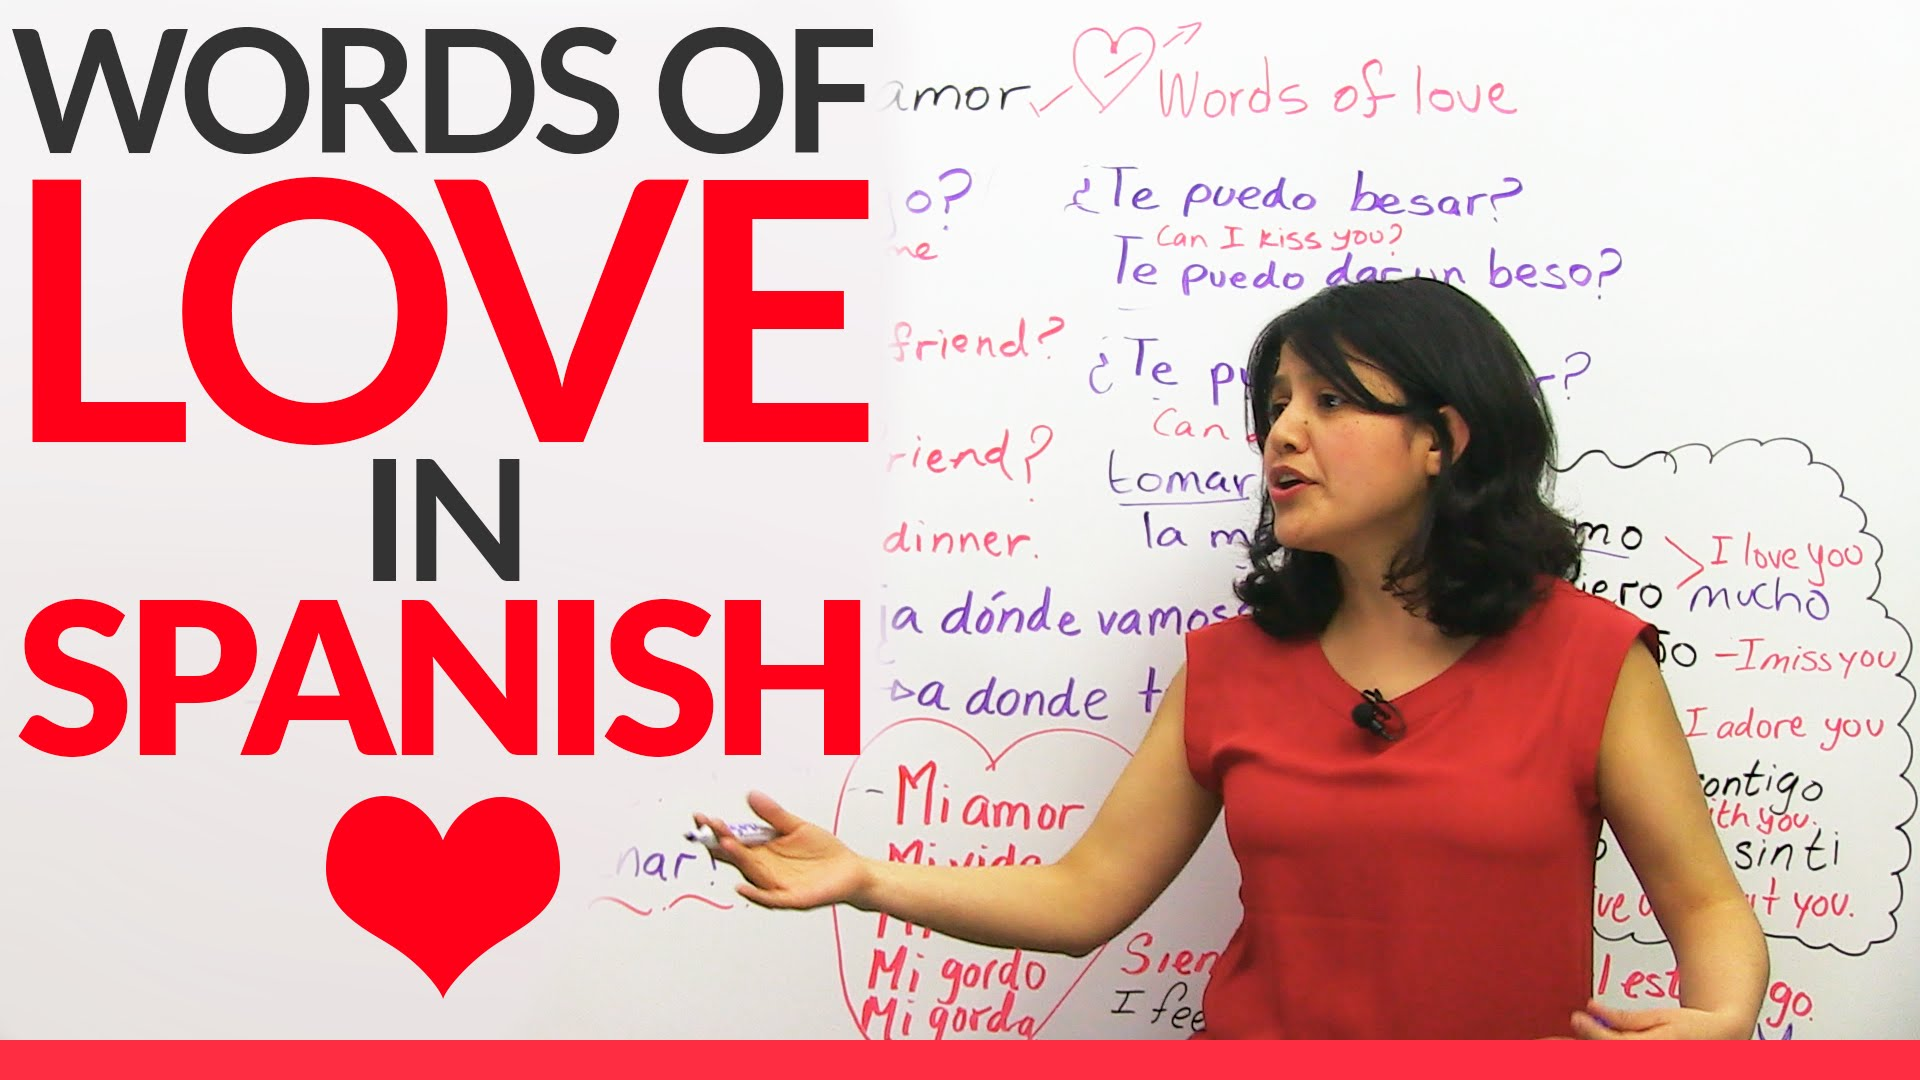 Learn Words of LOVE in Spanish ❤ ❤ ❤ - YouTube